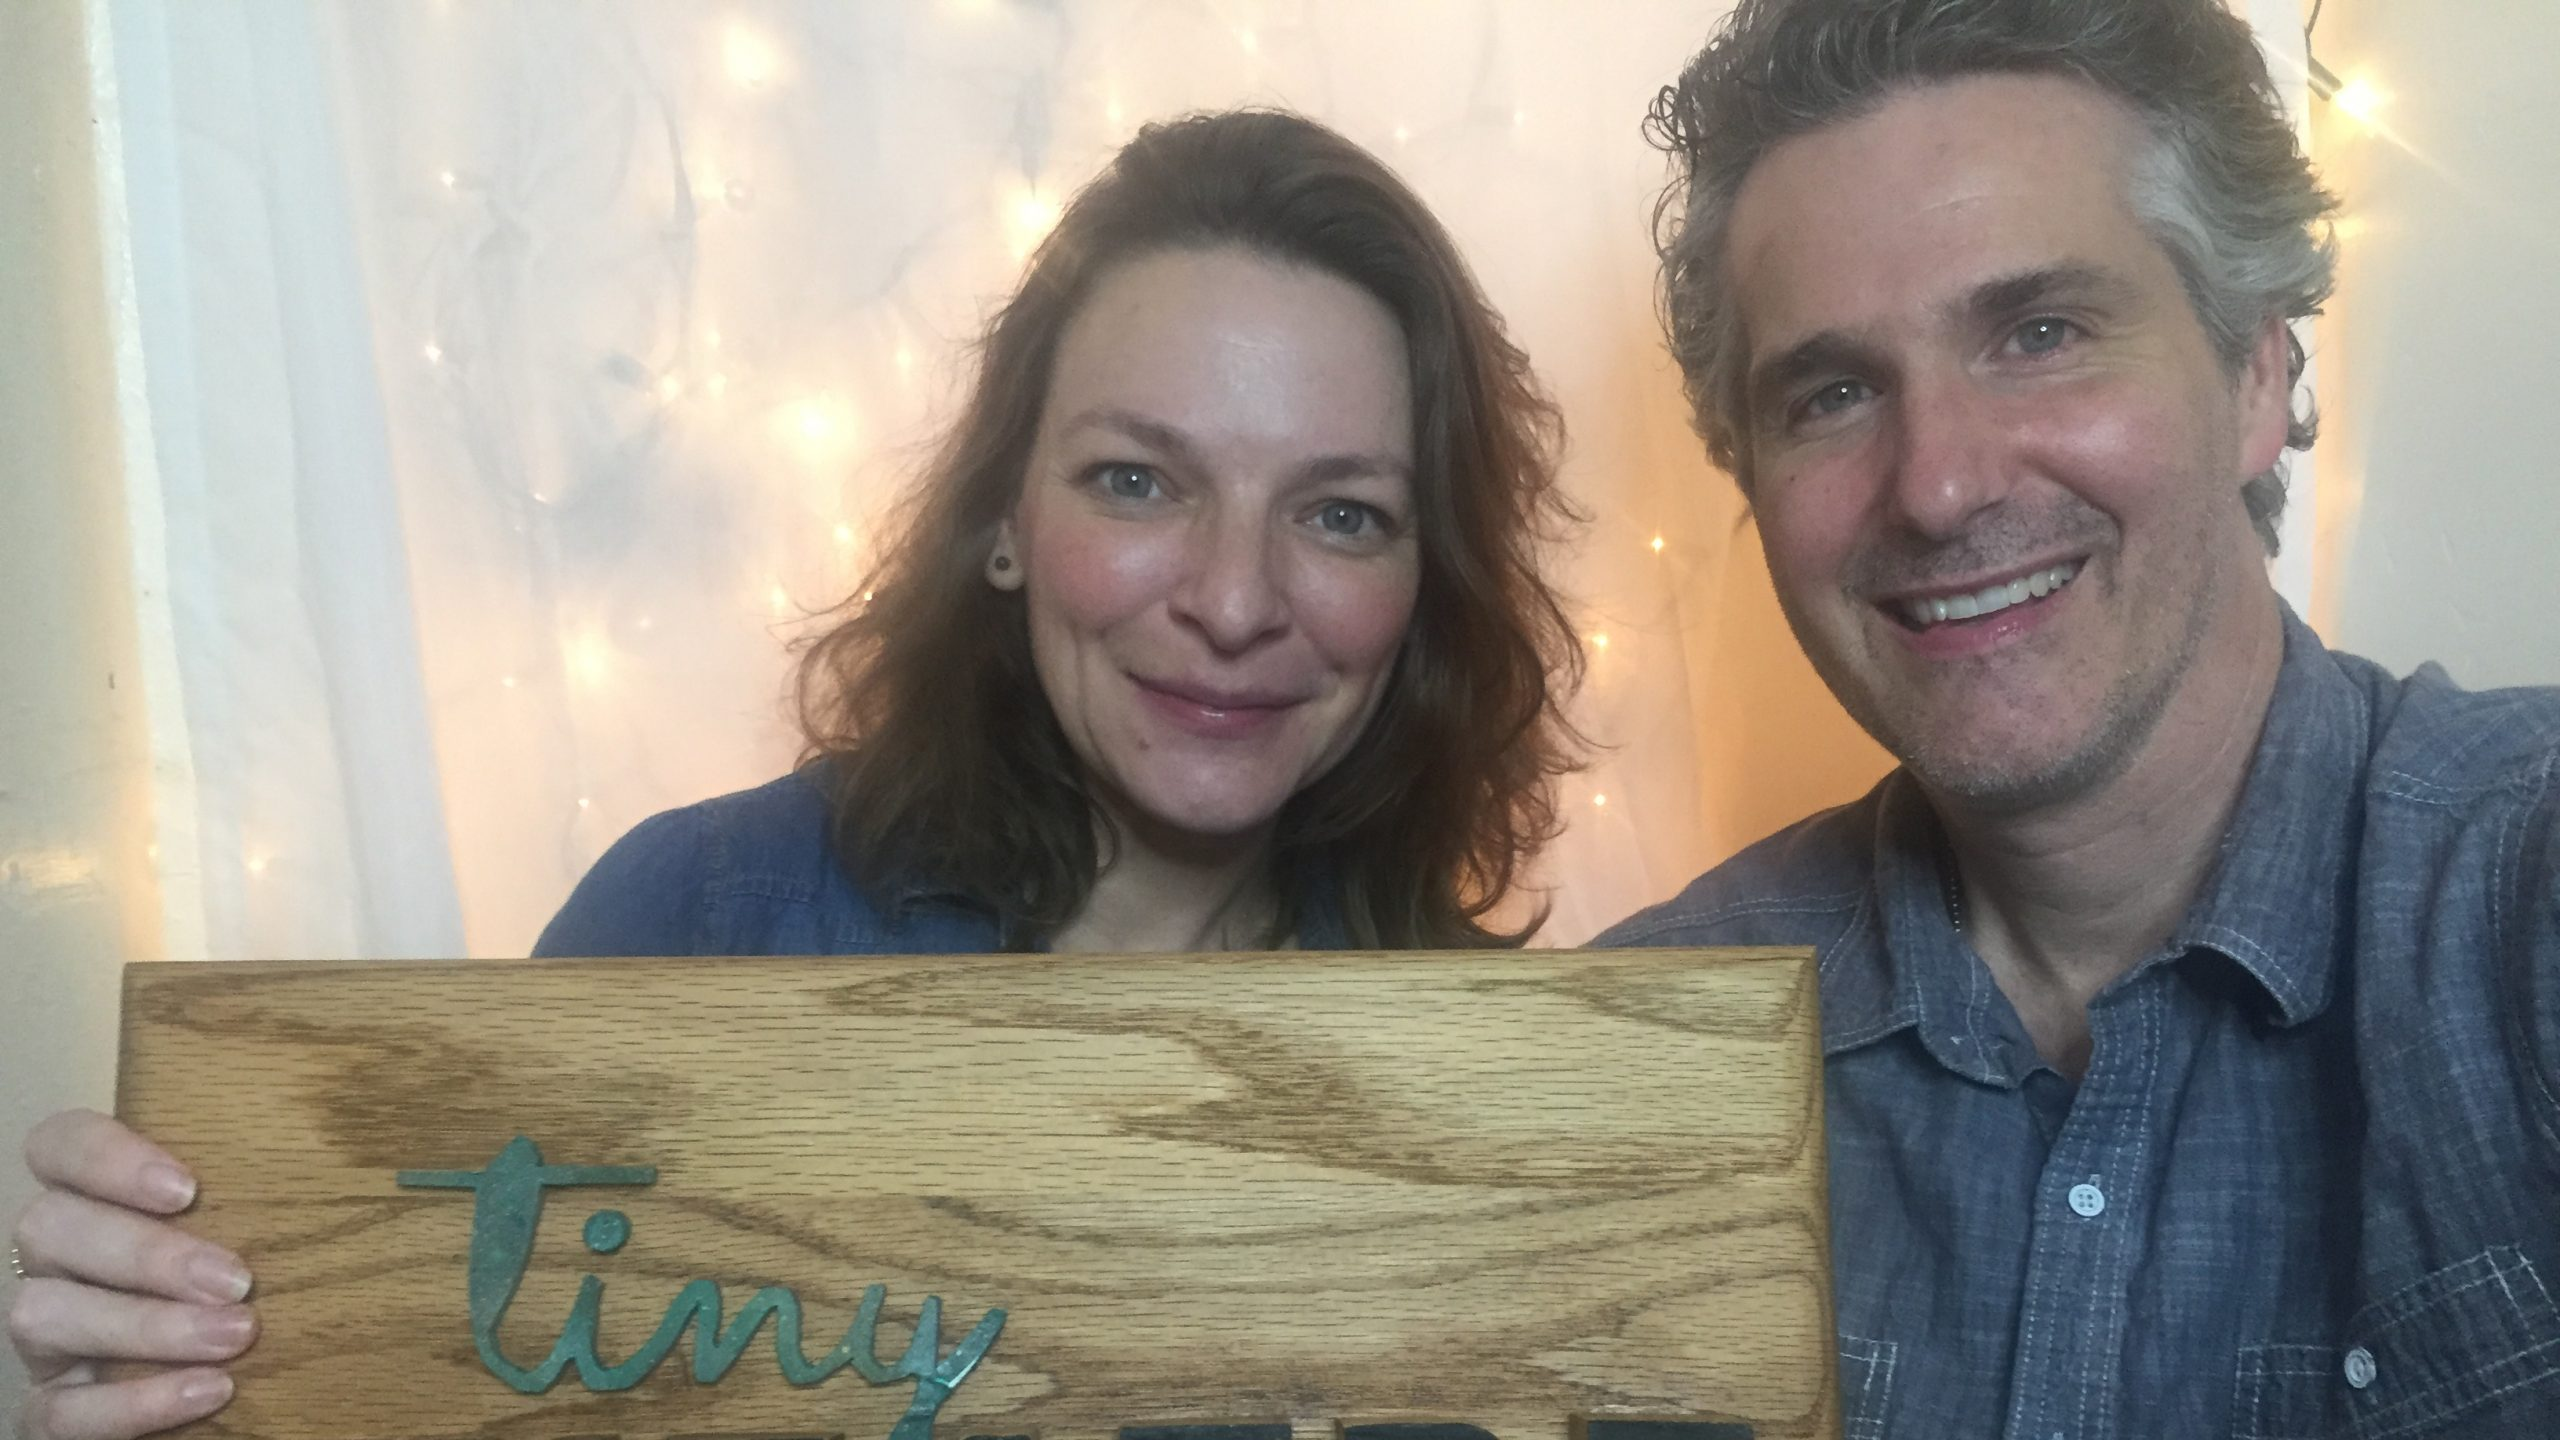 Former Birmingham actress, husband reinvent theater in COVID-19 world with Facebook Live's Tiny Theatre